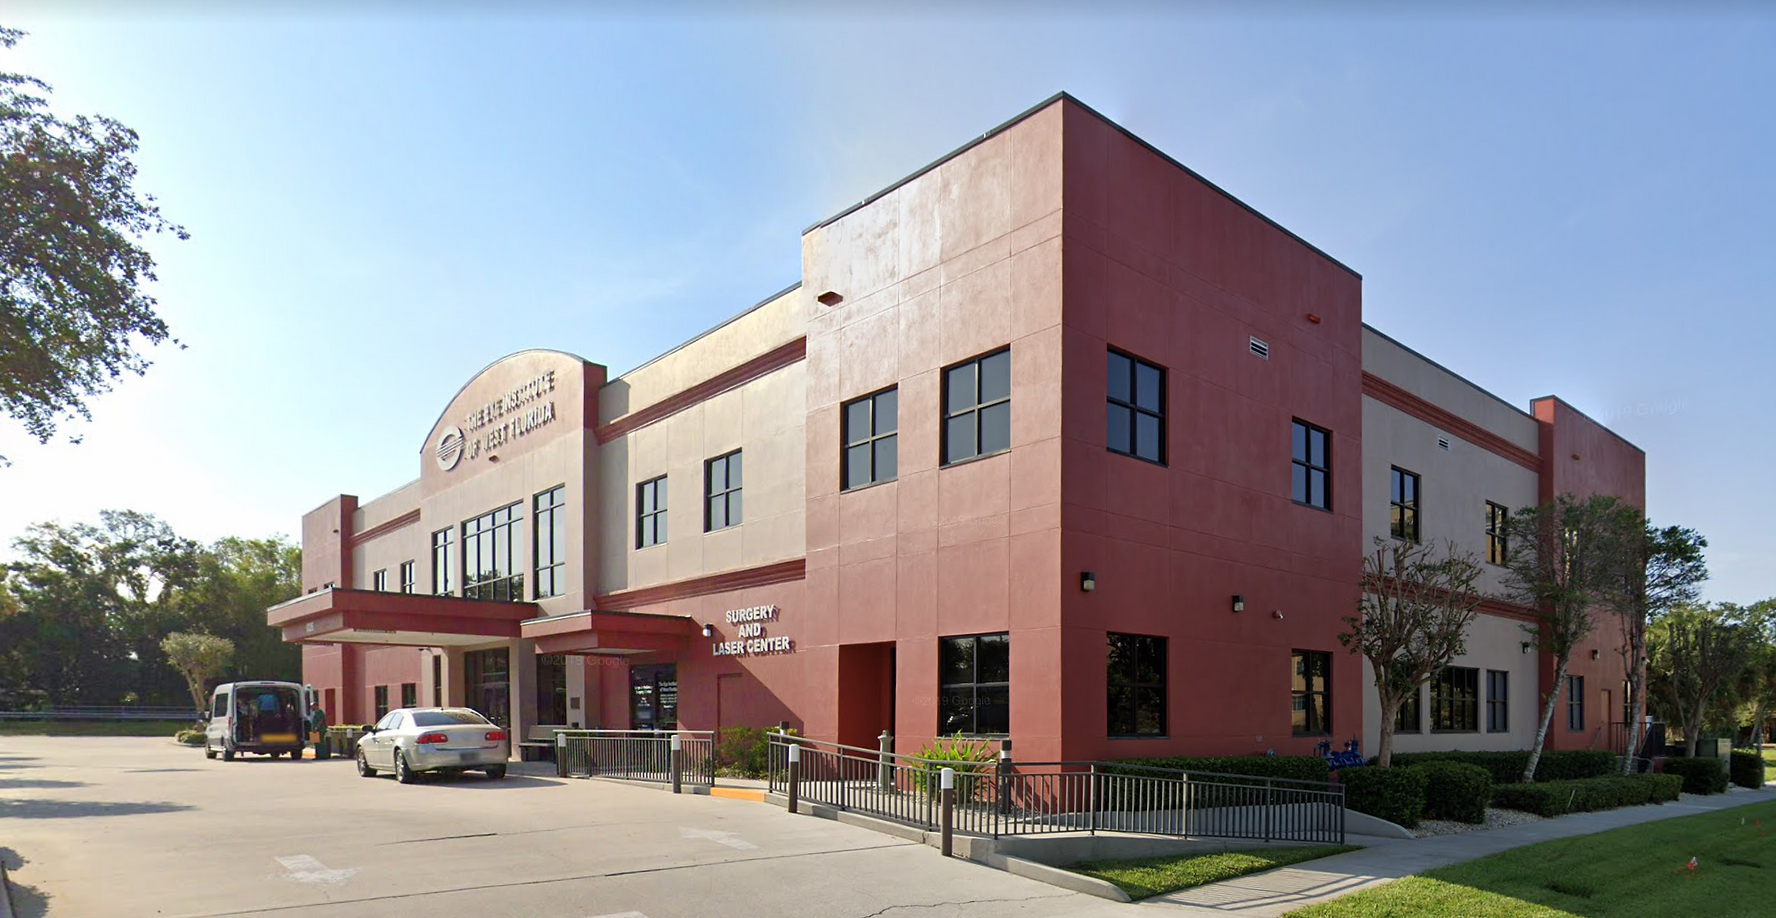 Surgery and Medical Office building, Largo